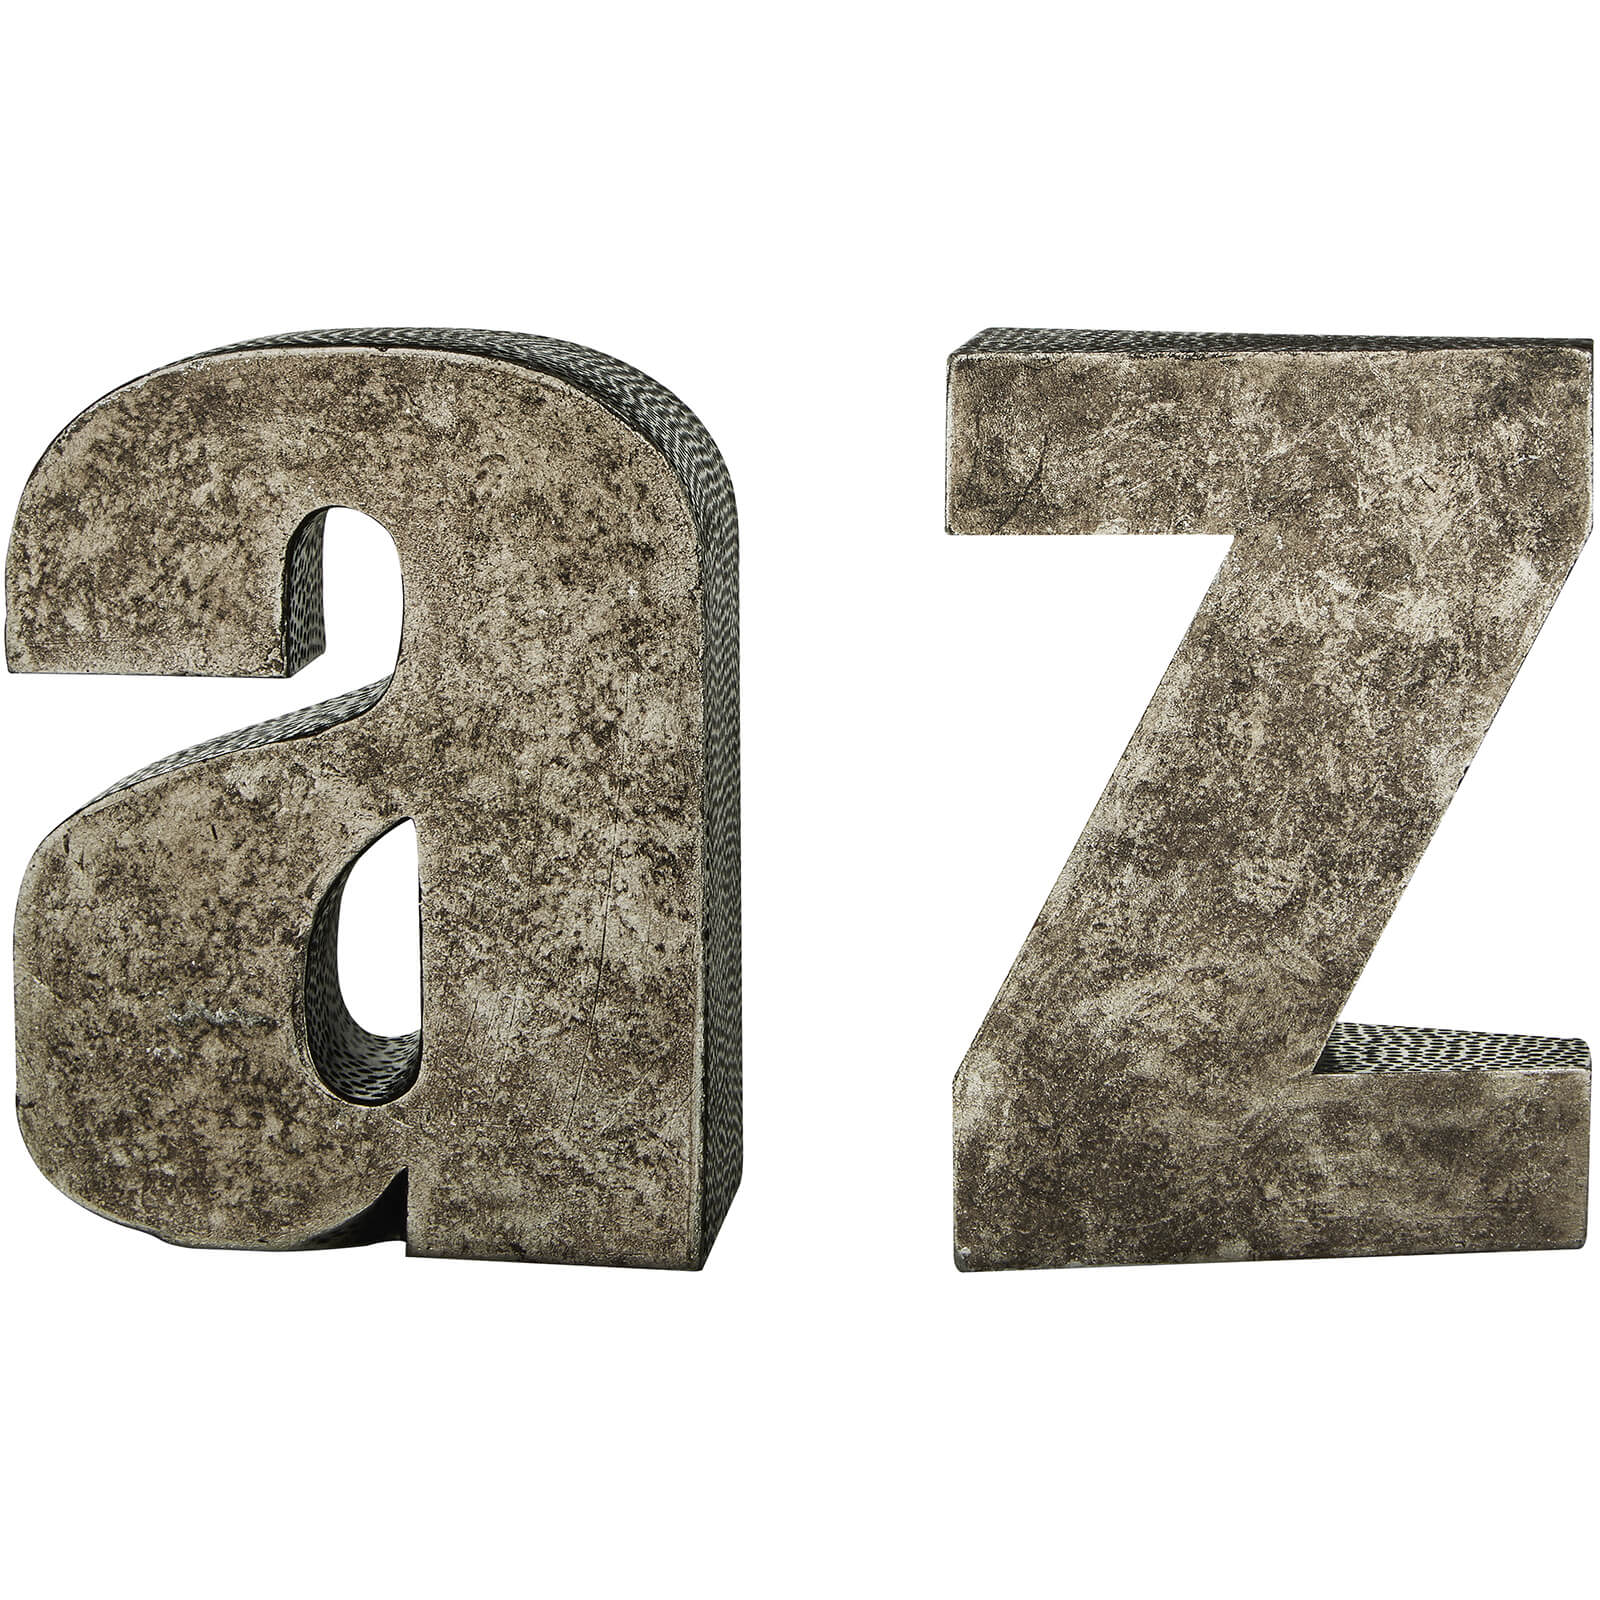 Fifty Five South A-Z Bookends - Antique Silver (Set of 2)